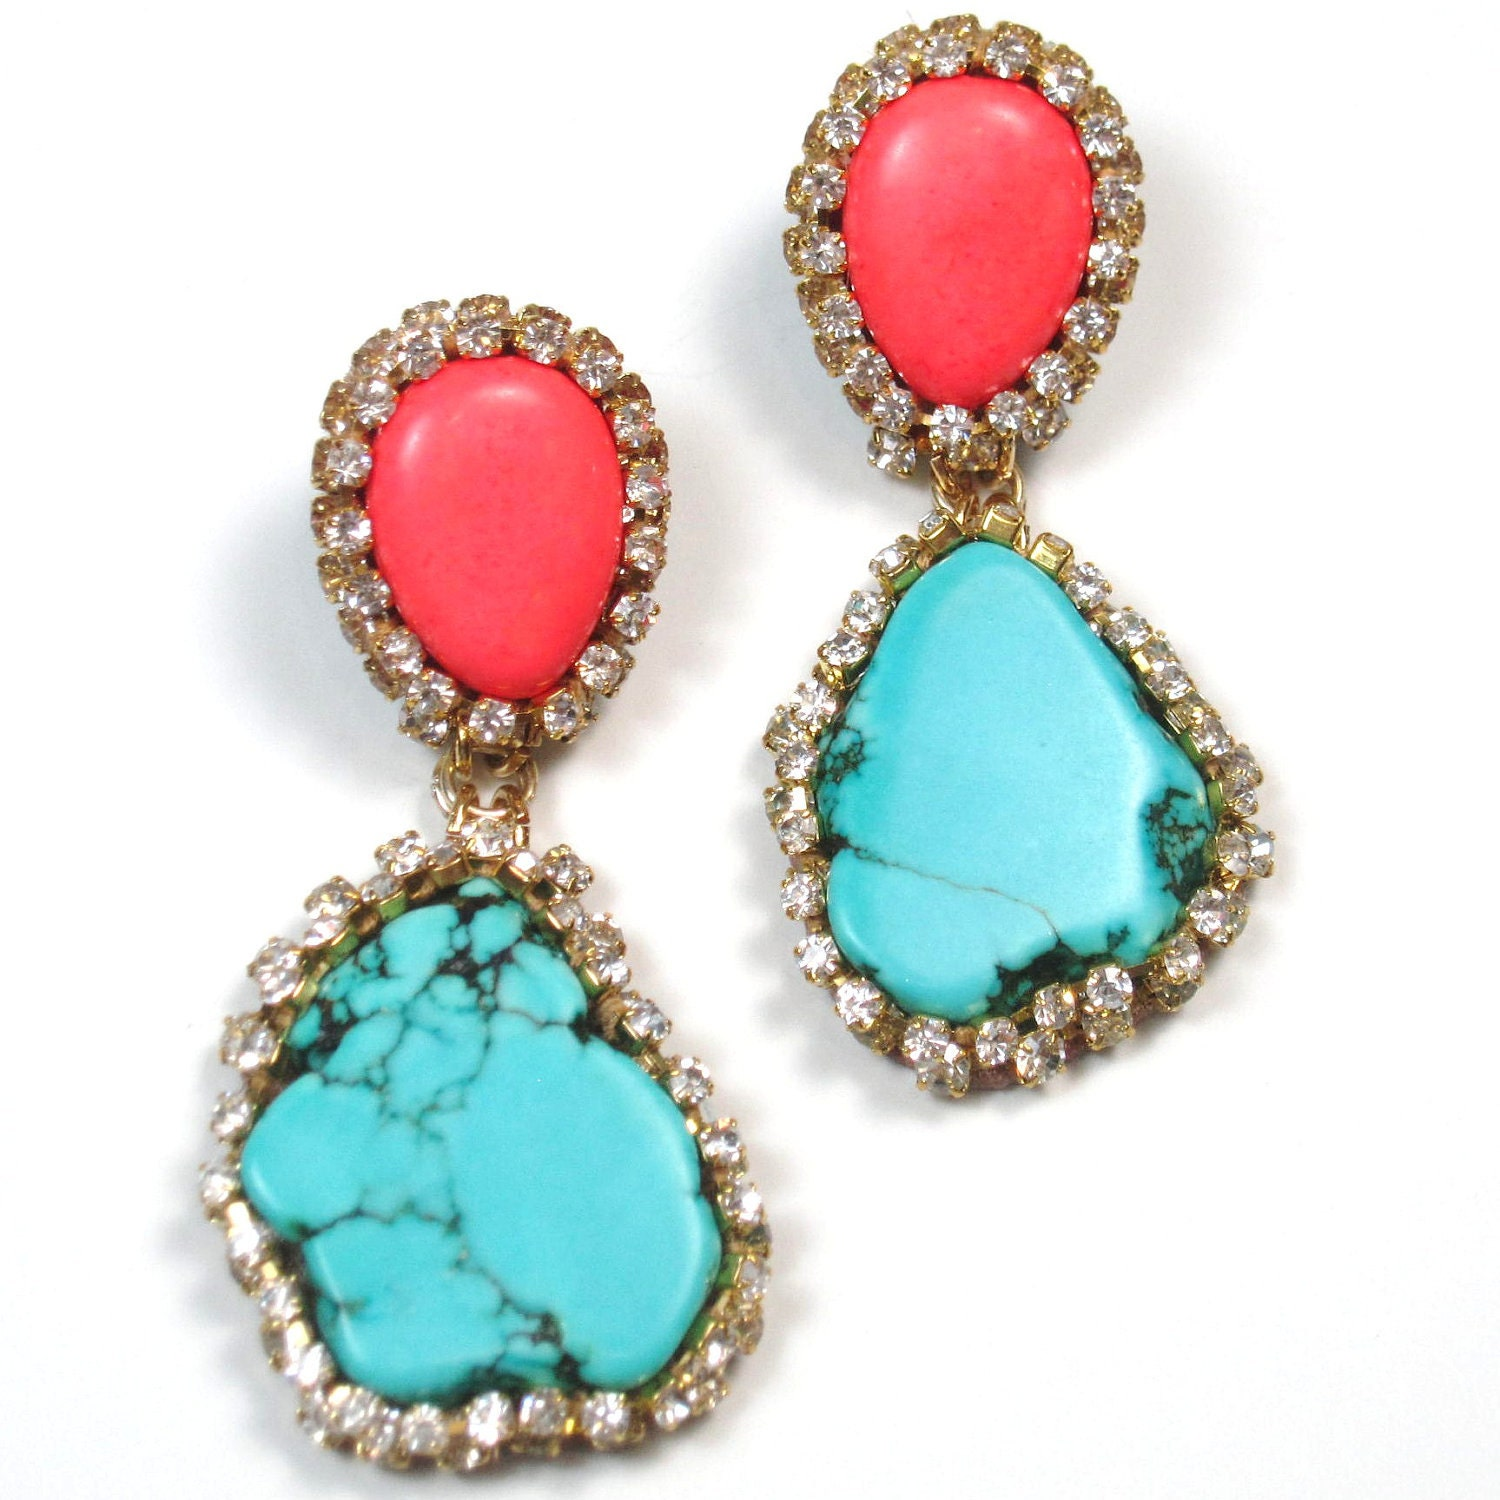 statement earrings turquoise coral and embellished